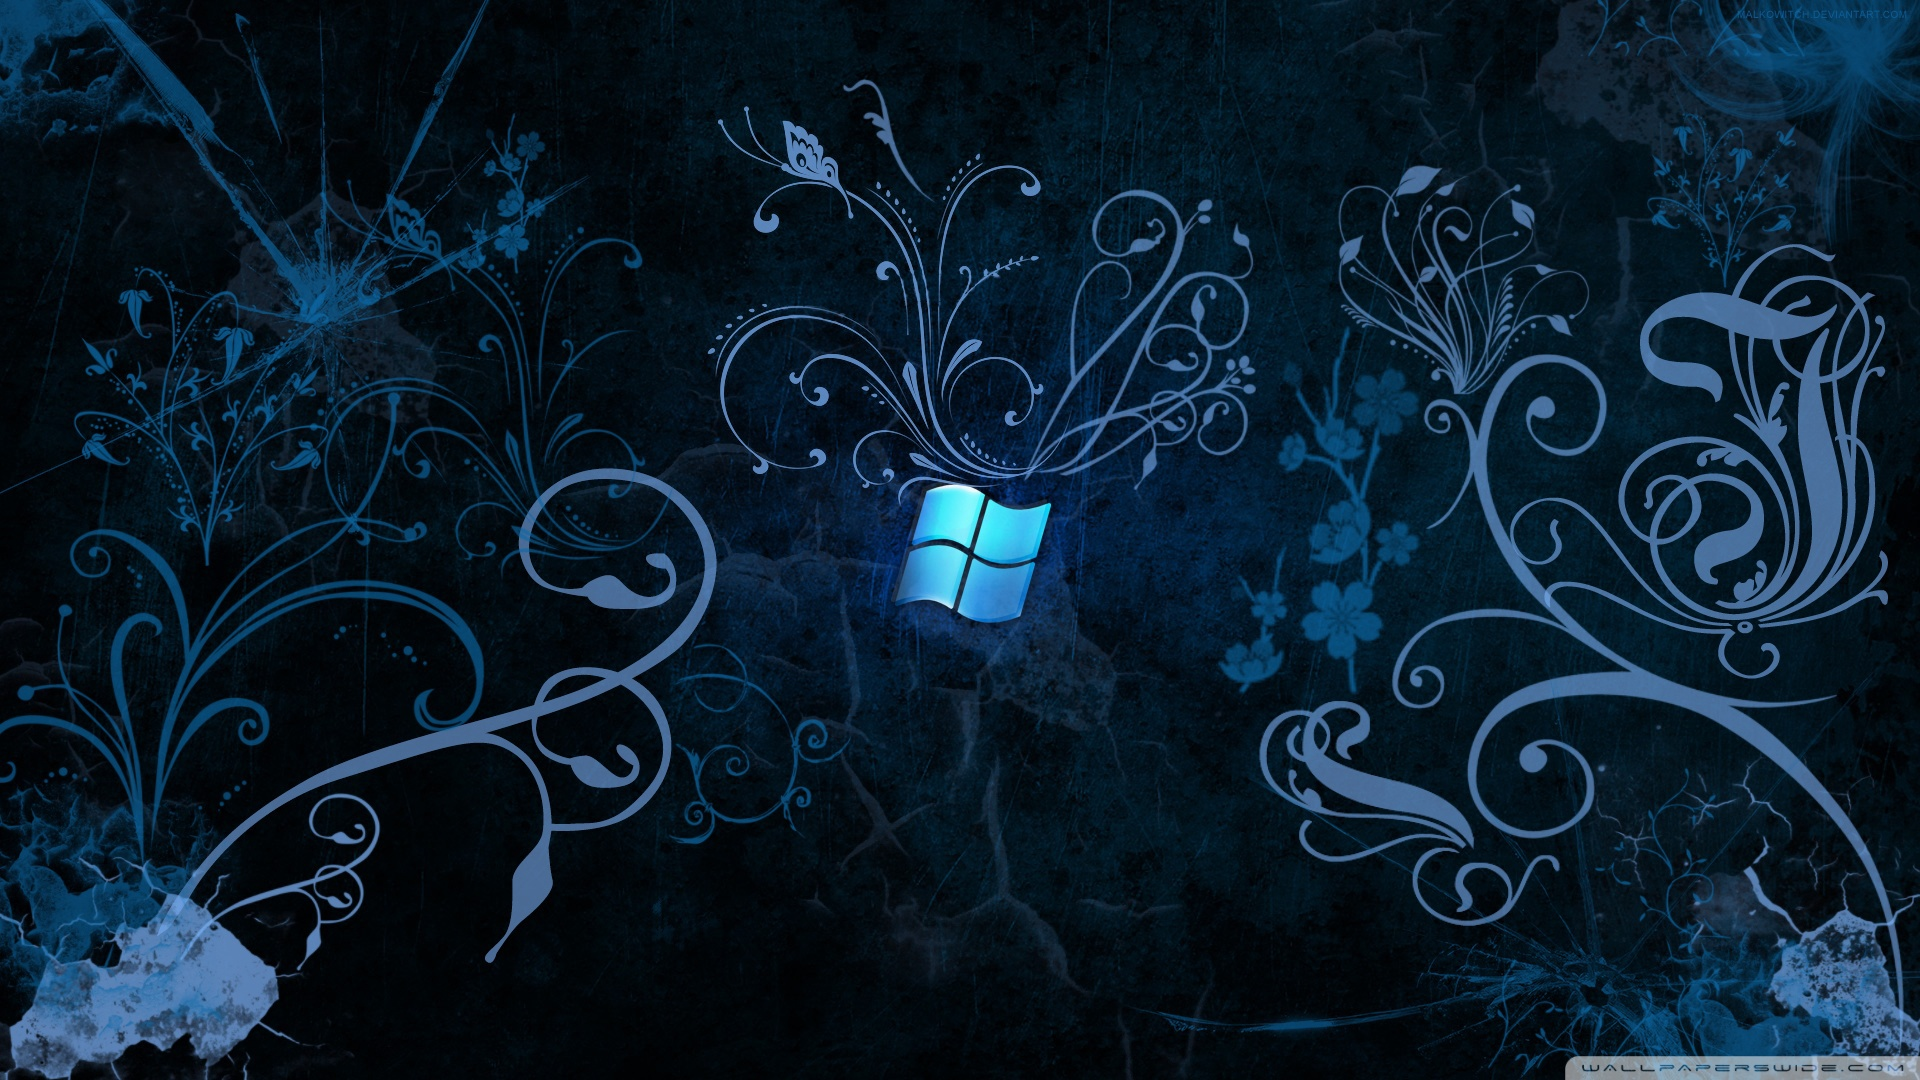 Windows 81 Wallpaper 1920X1080 248994 1920x1080